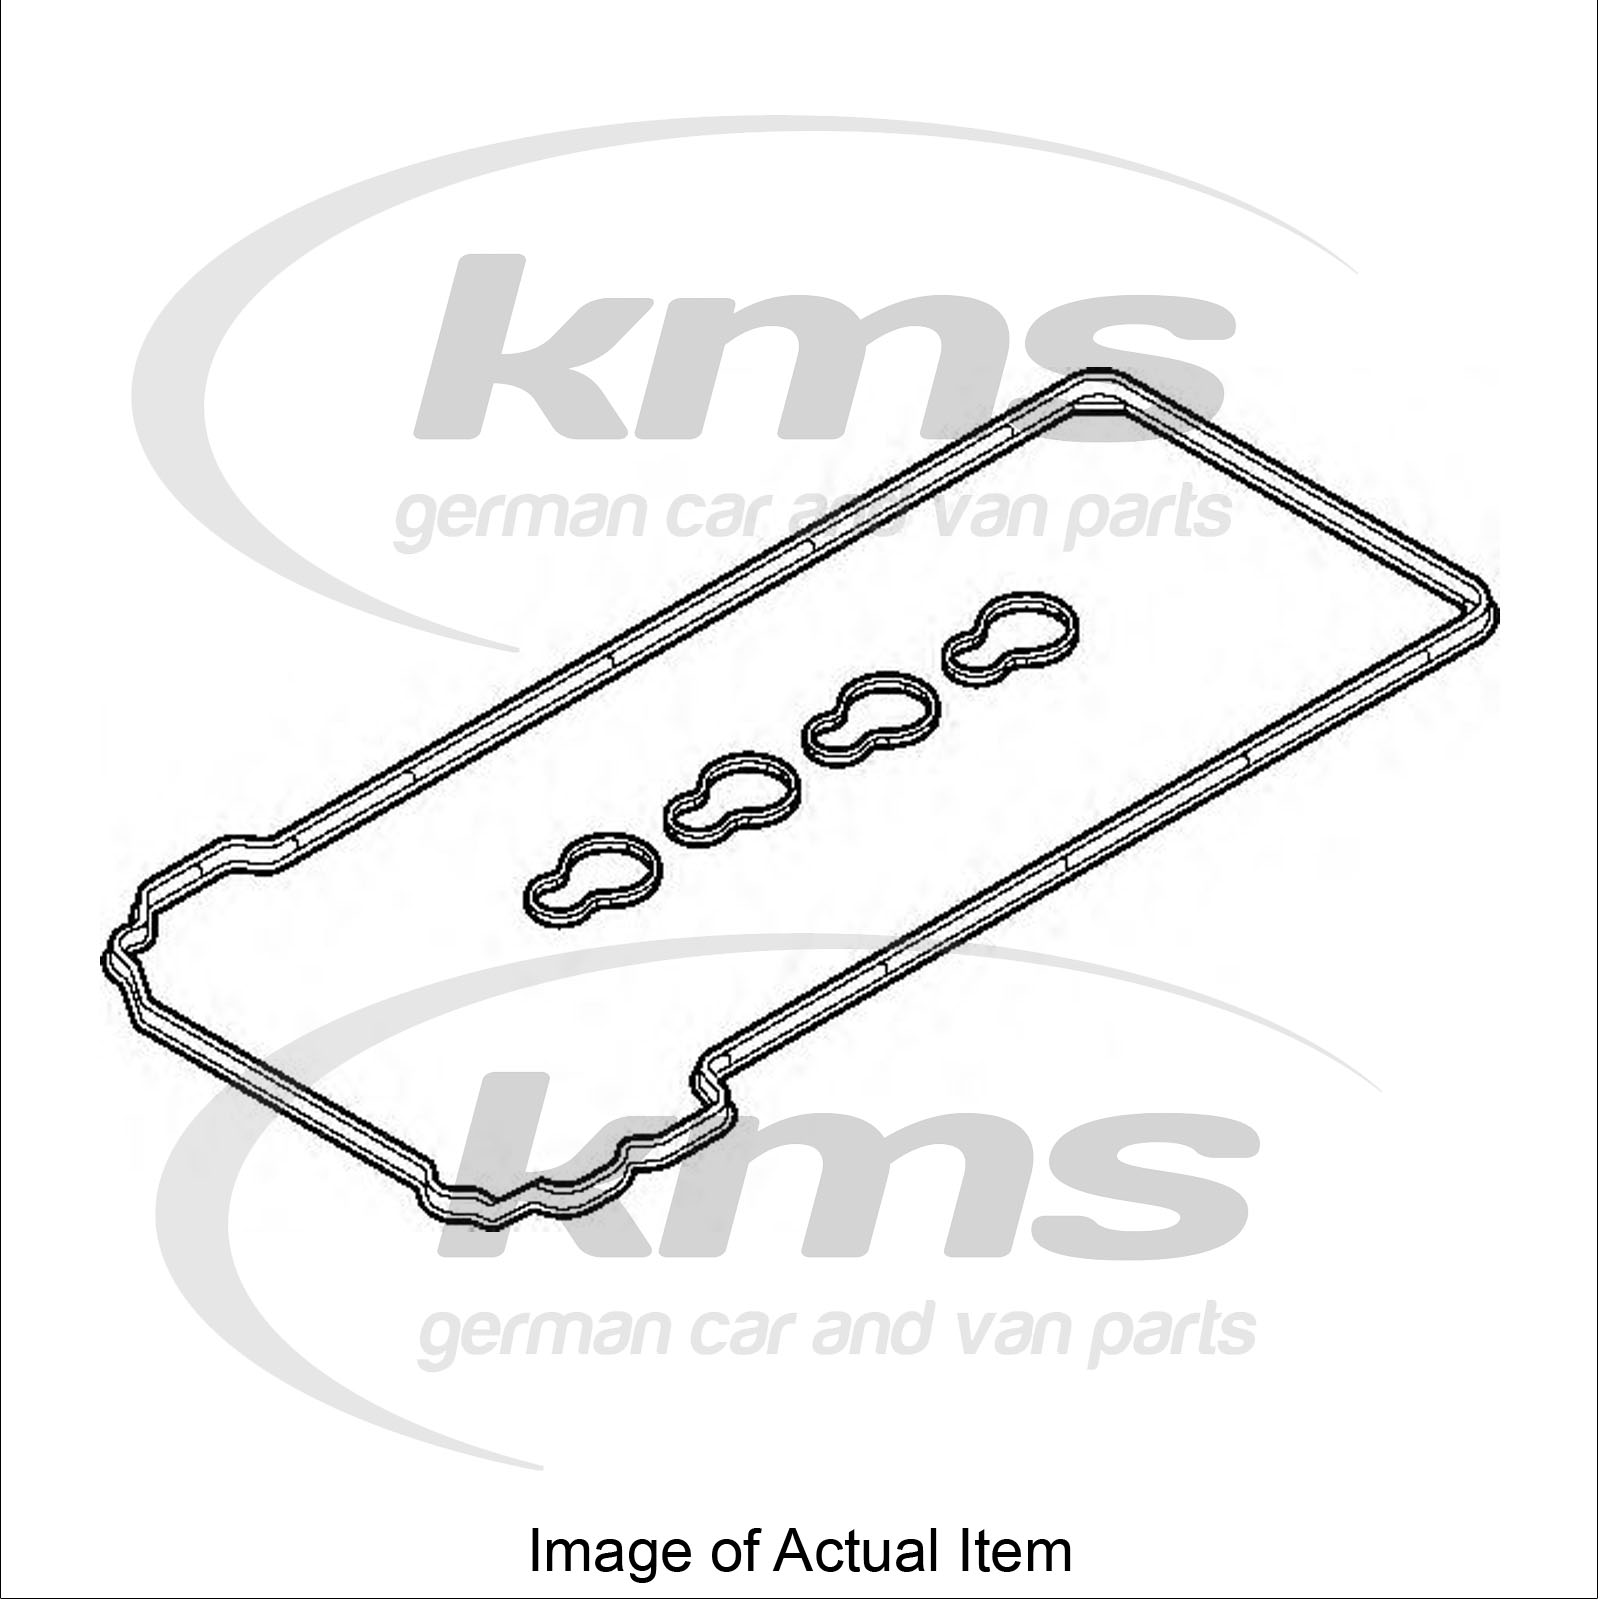 GASKET SET for CYLINDER HEAD COVER MERCEDES M-CLASS (W163